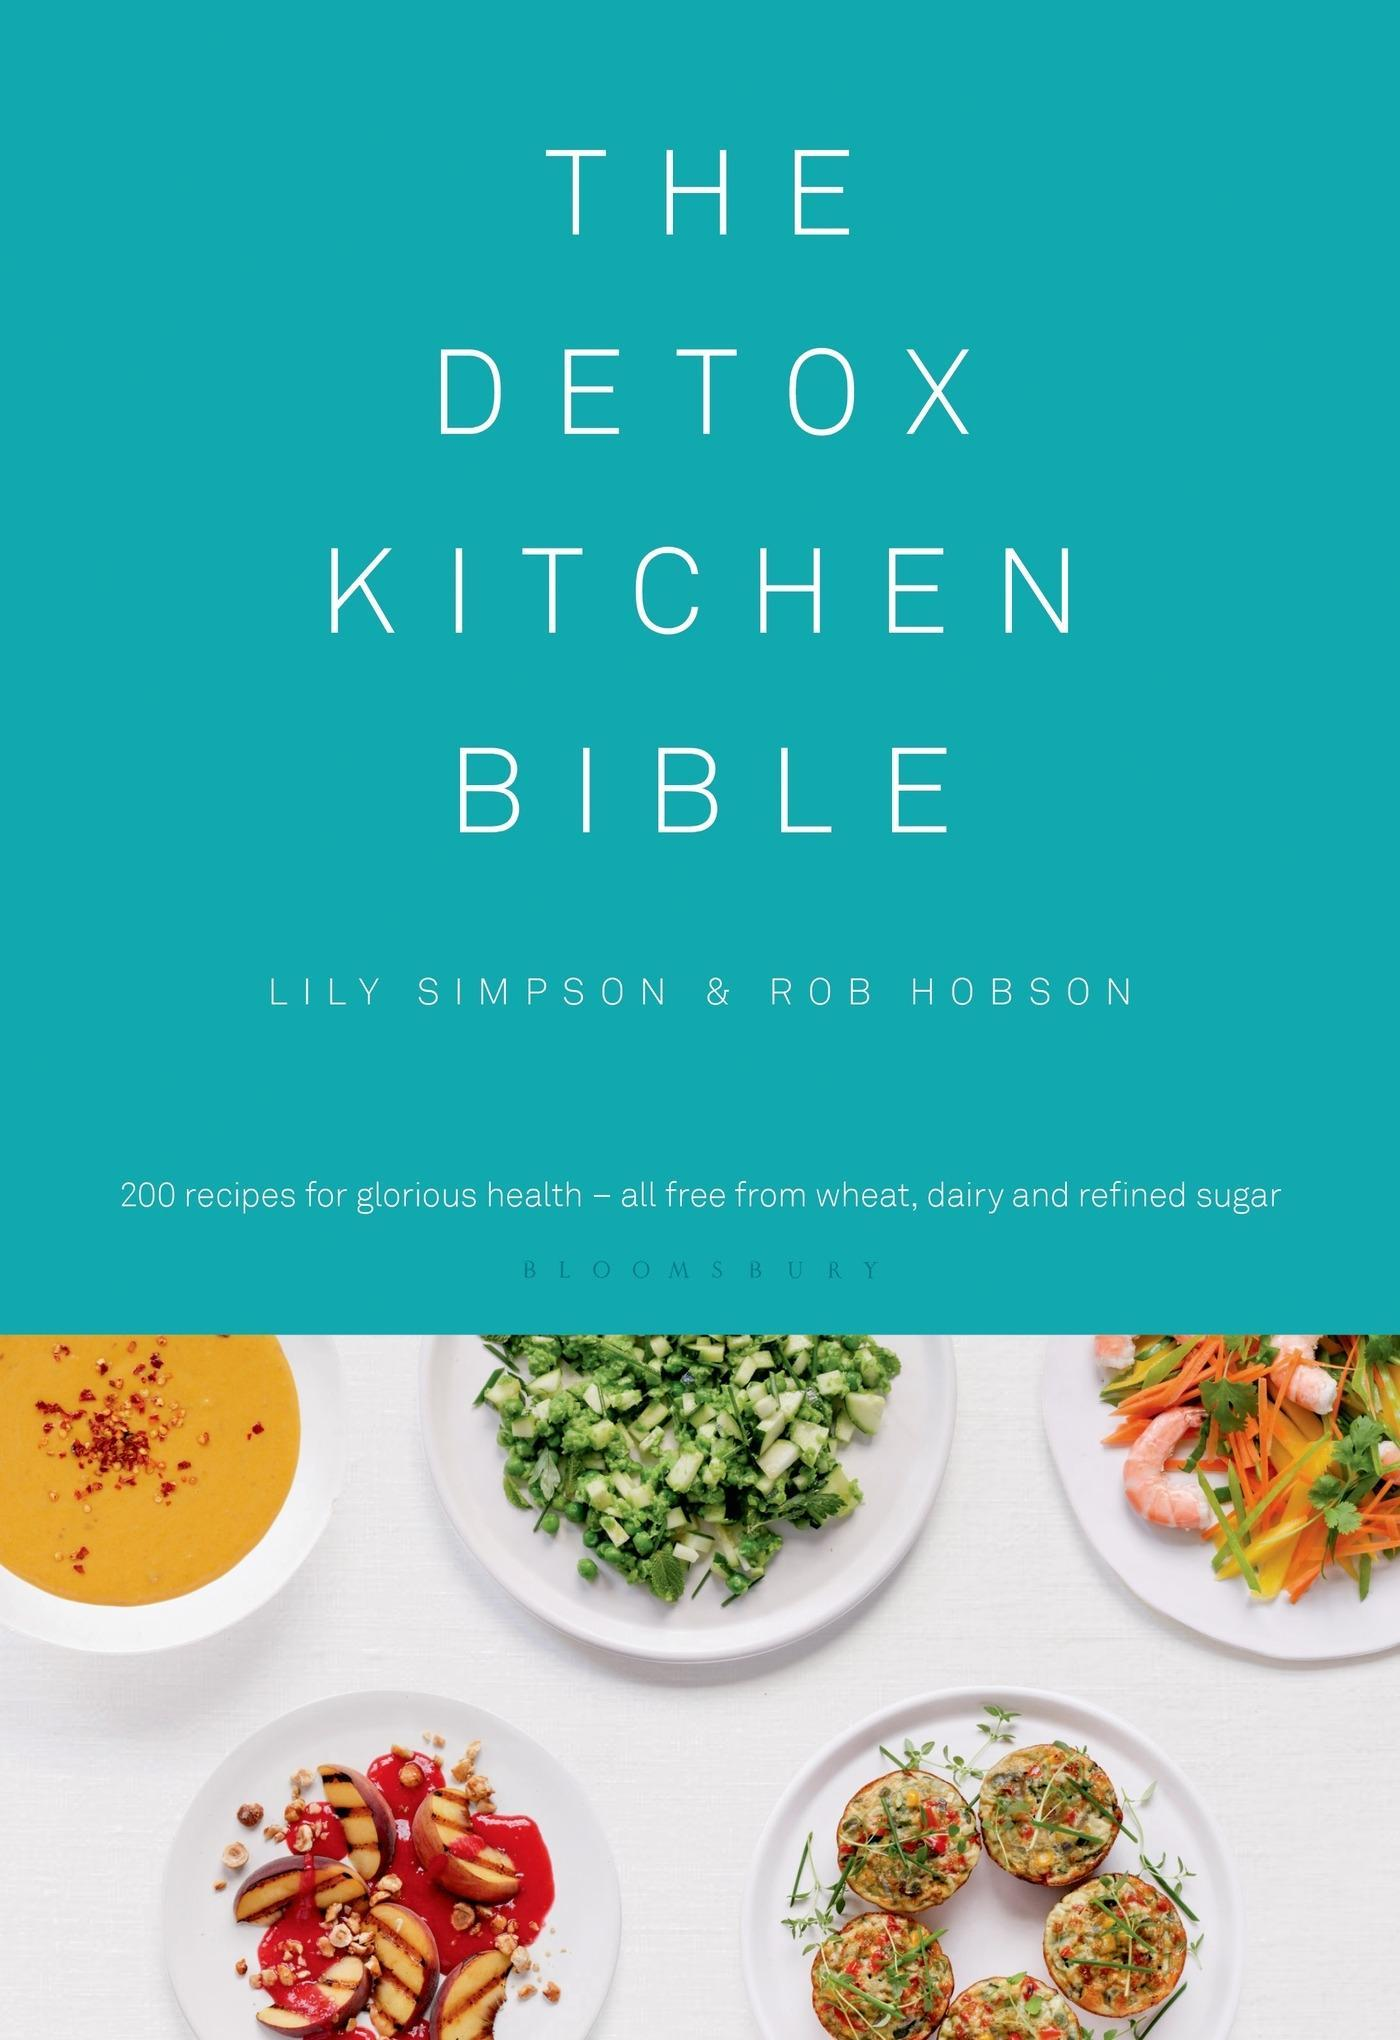 The Detox Kitchen Bible Lily Simpson